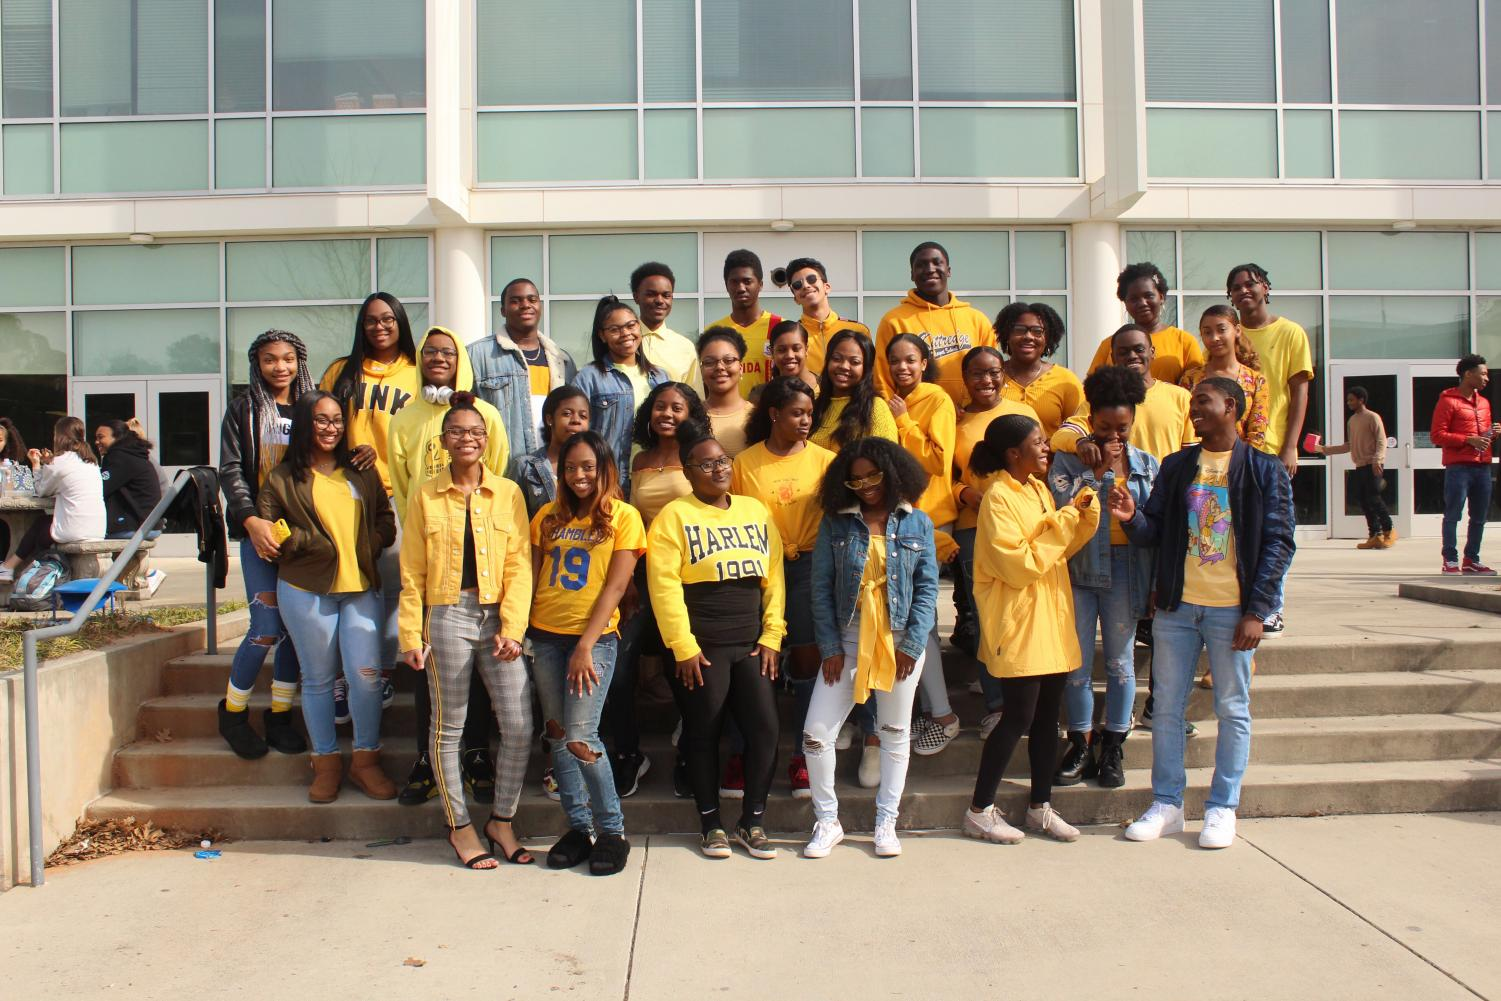 BeU stands together in yellow for their Black History Month movement.